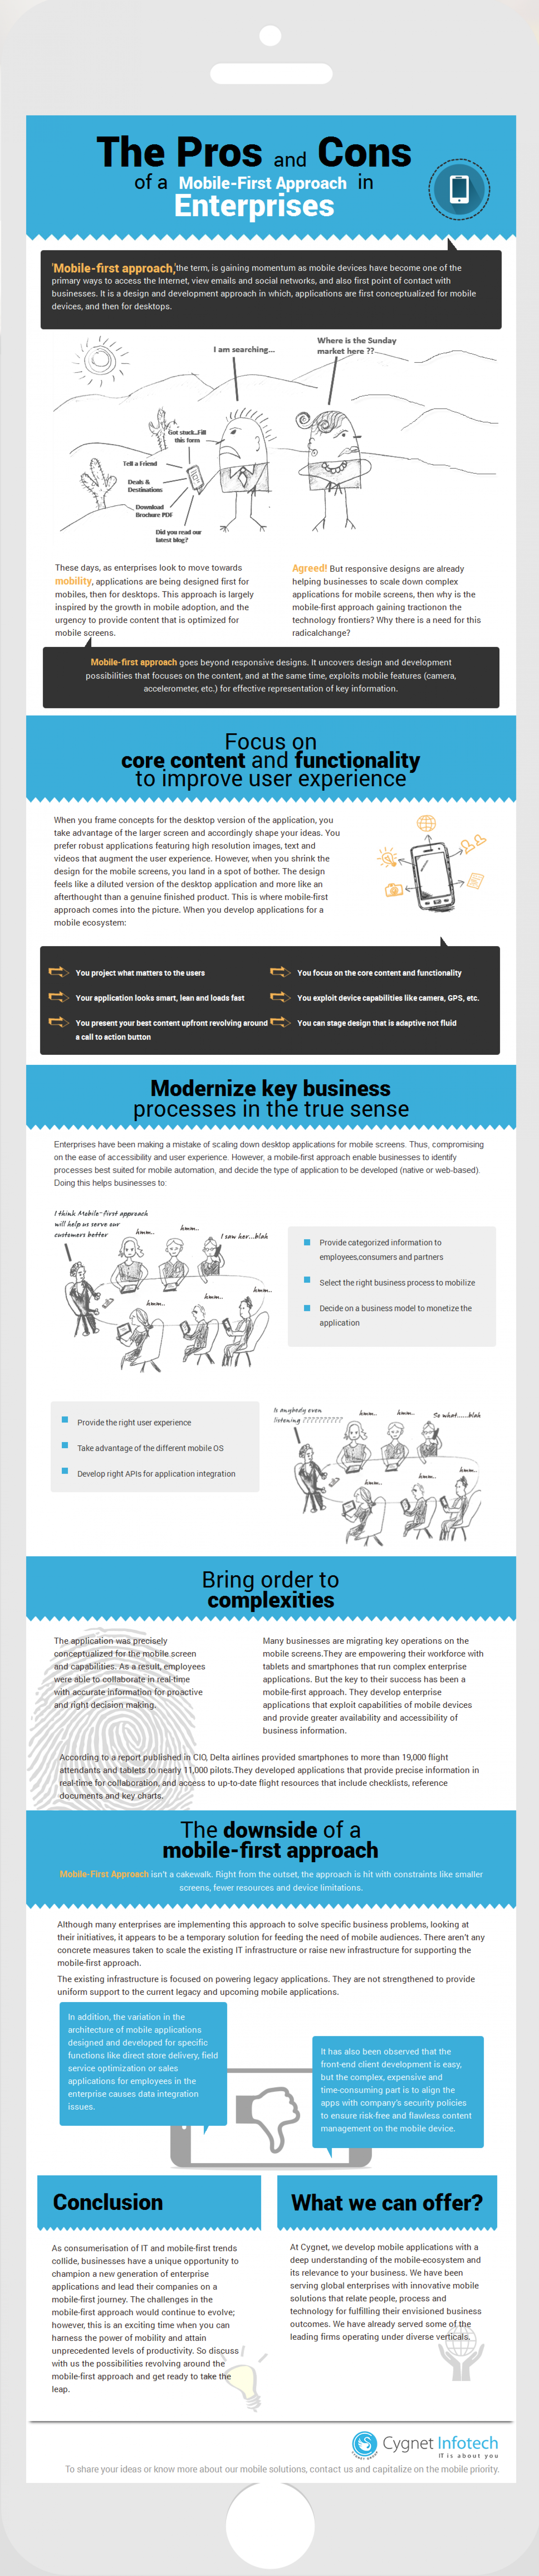 The Pros and Cons of a Mobile-First Approach in Enterprises Infographic